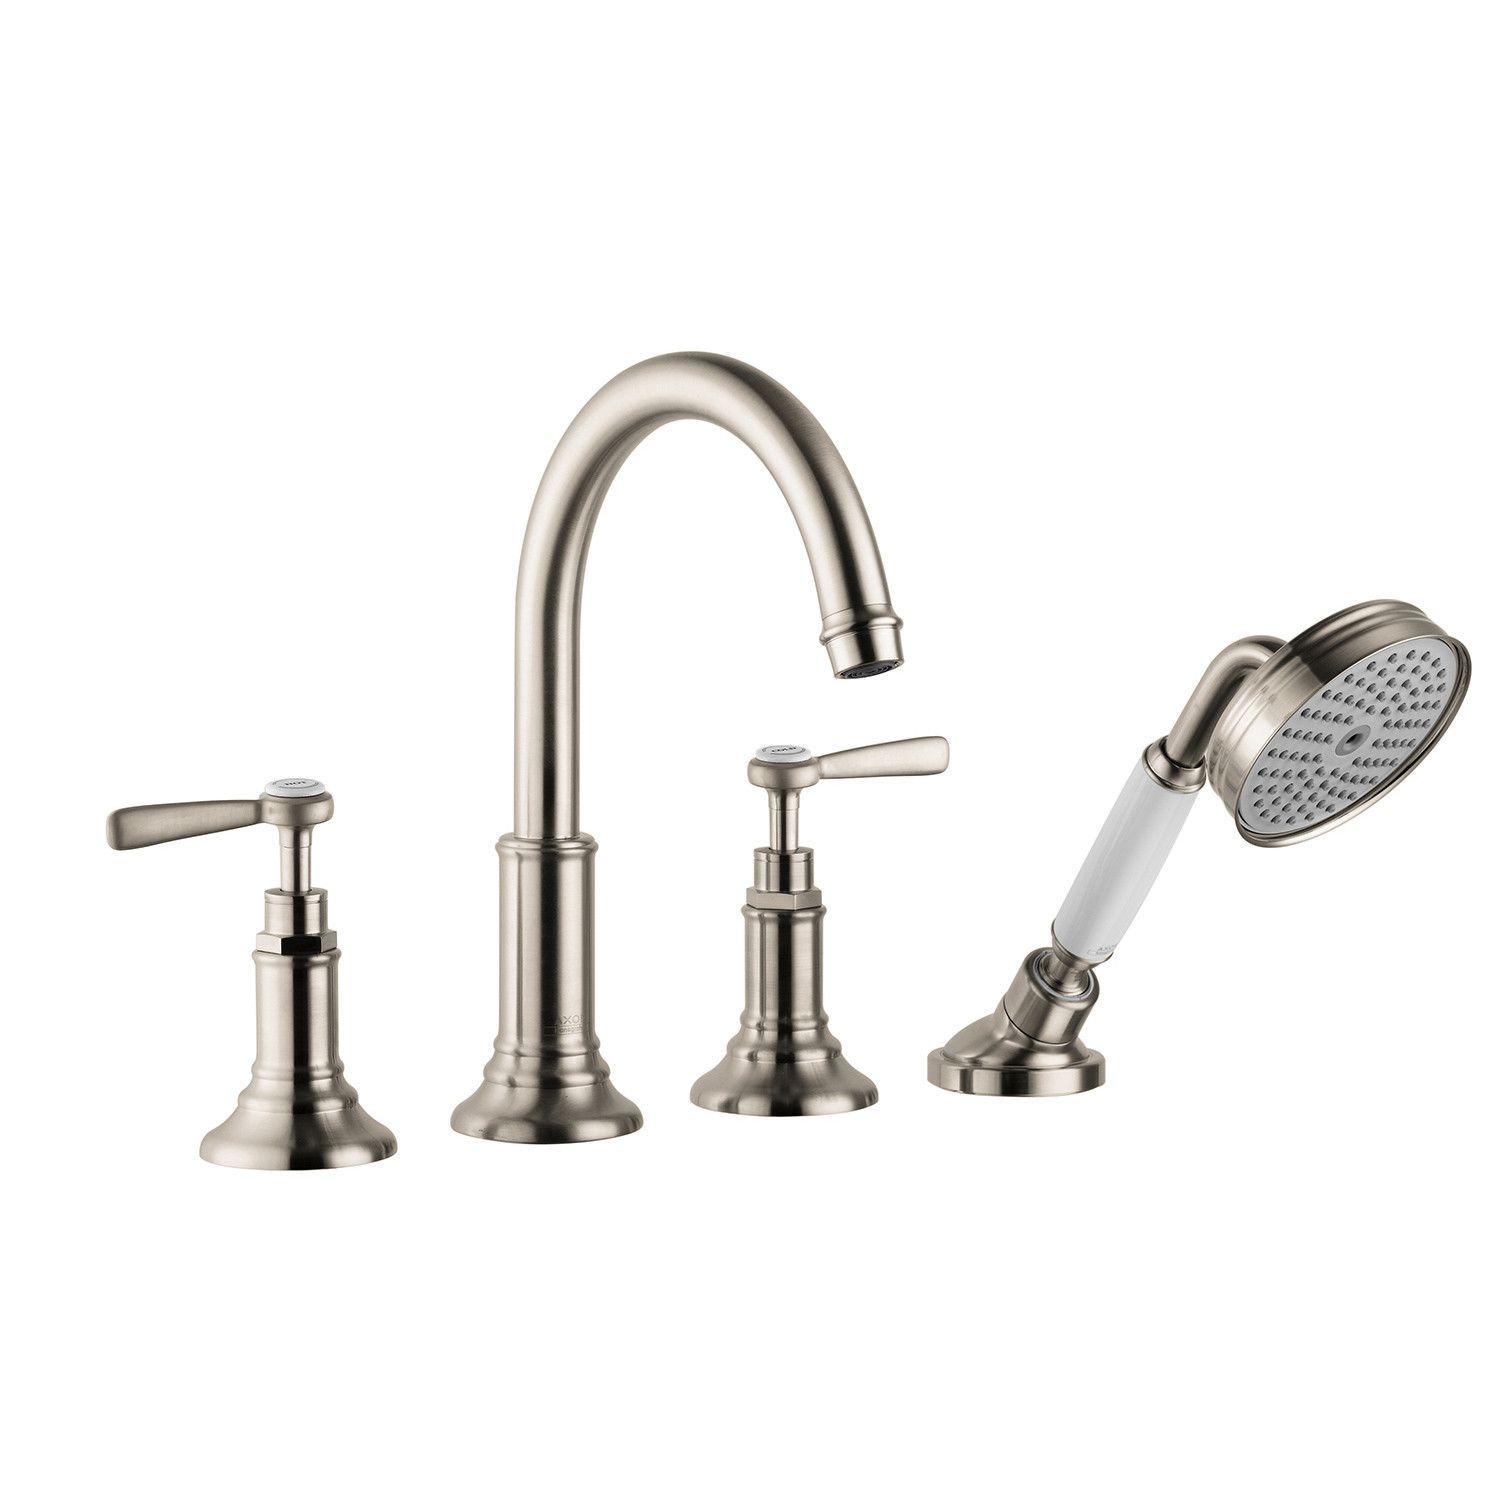 Roman Tub Spout With Diverter. Hansgrohe 16550821 Brushed Nickel Axor Montreux Roman Tub Filler Faucet  Deck Mounted with Diverter Metal